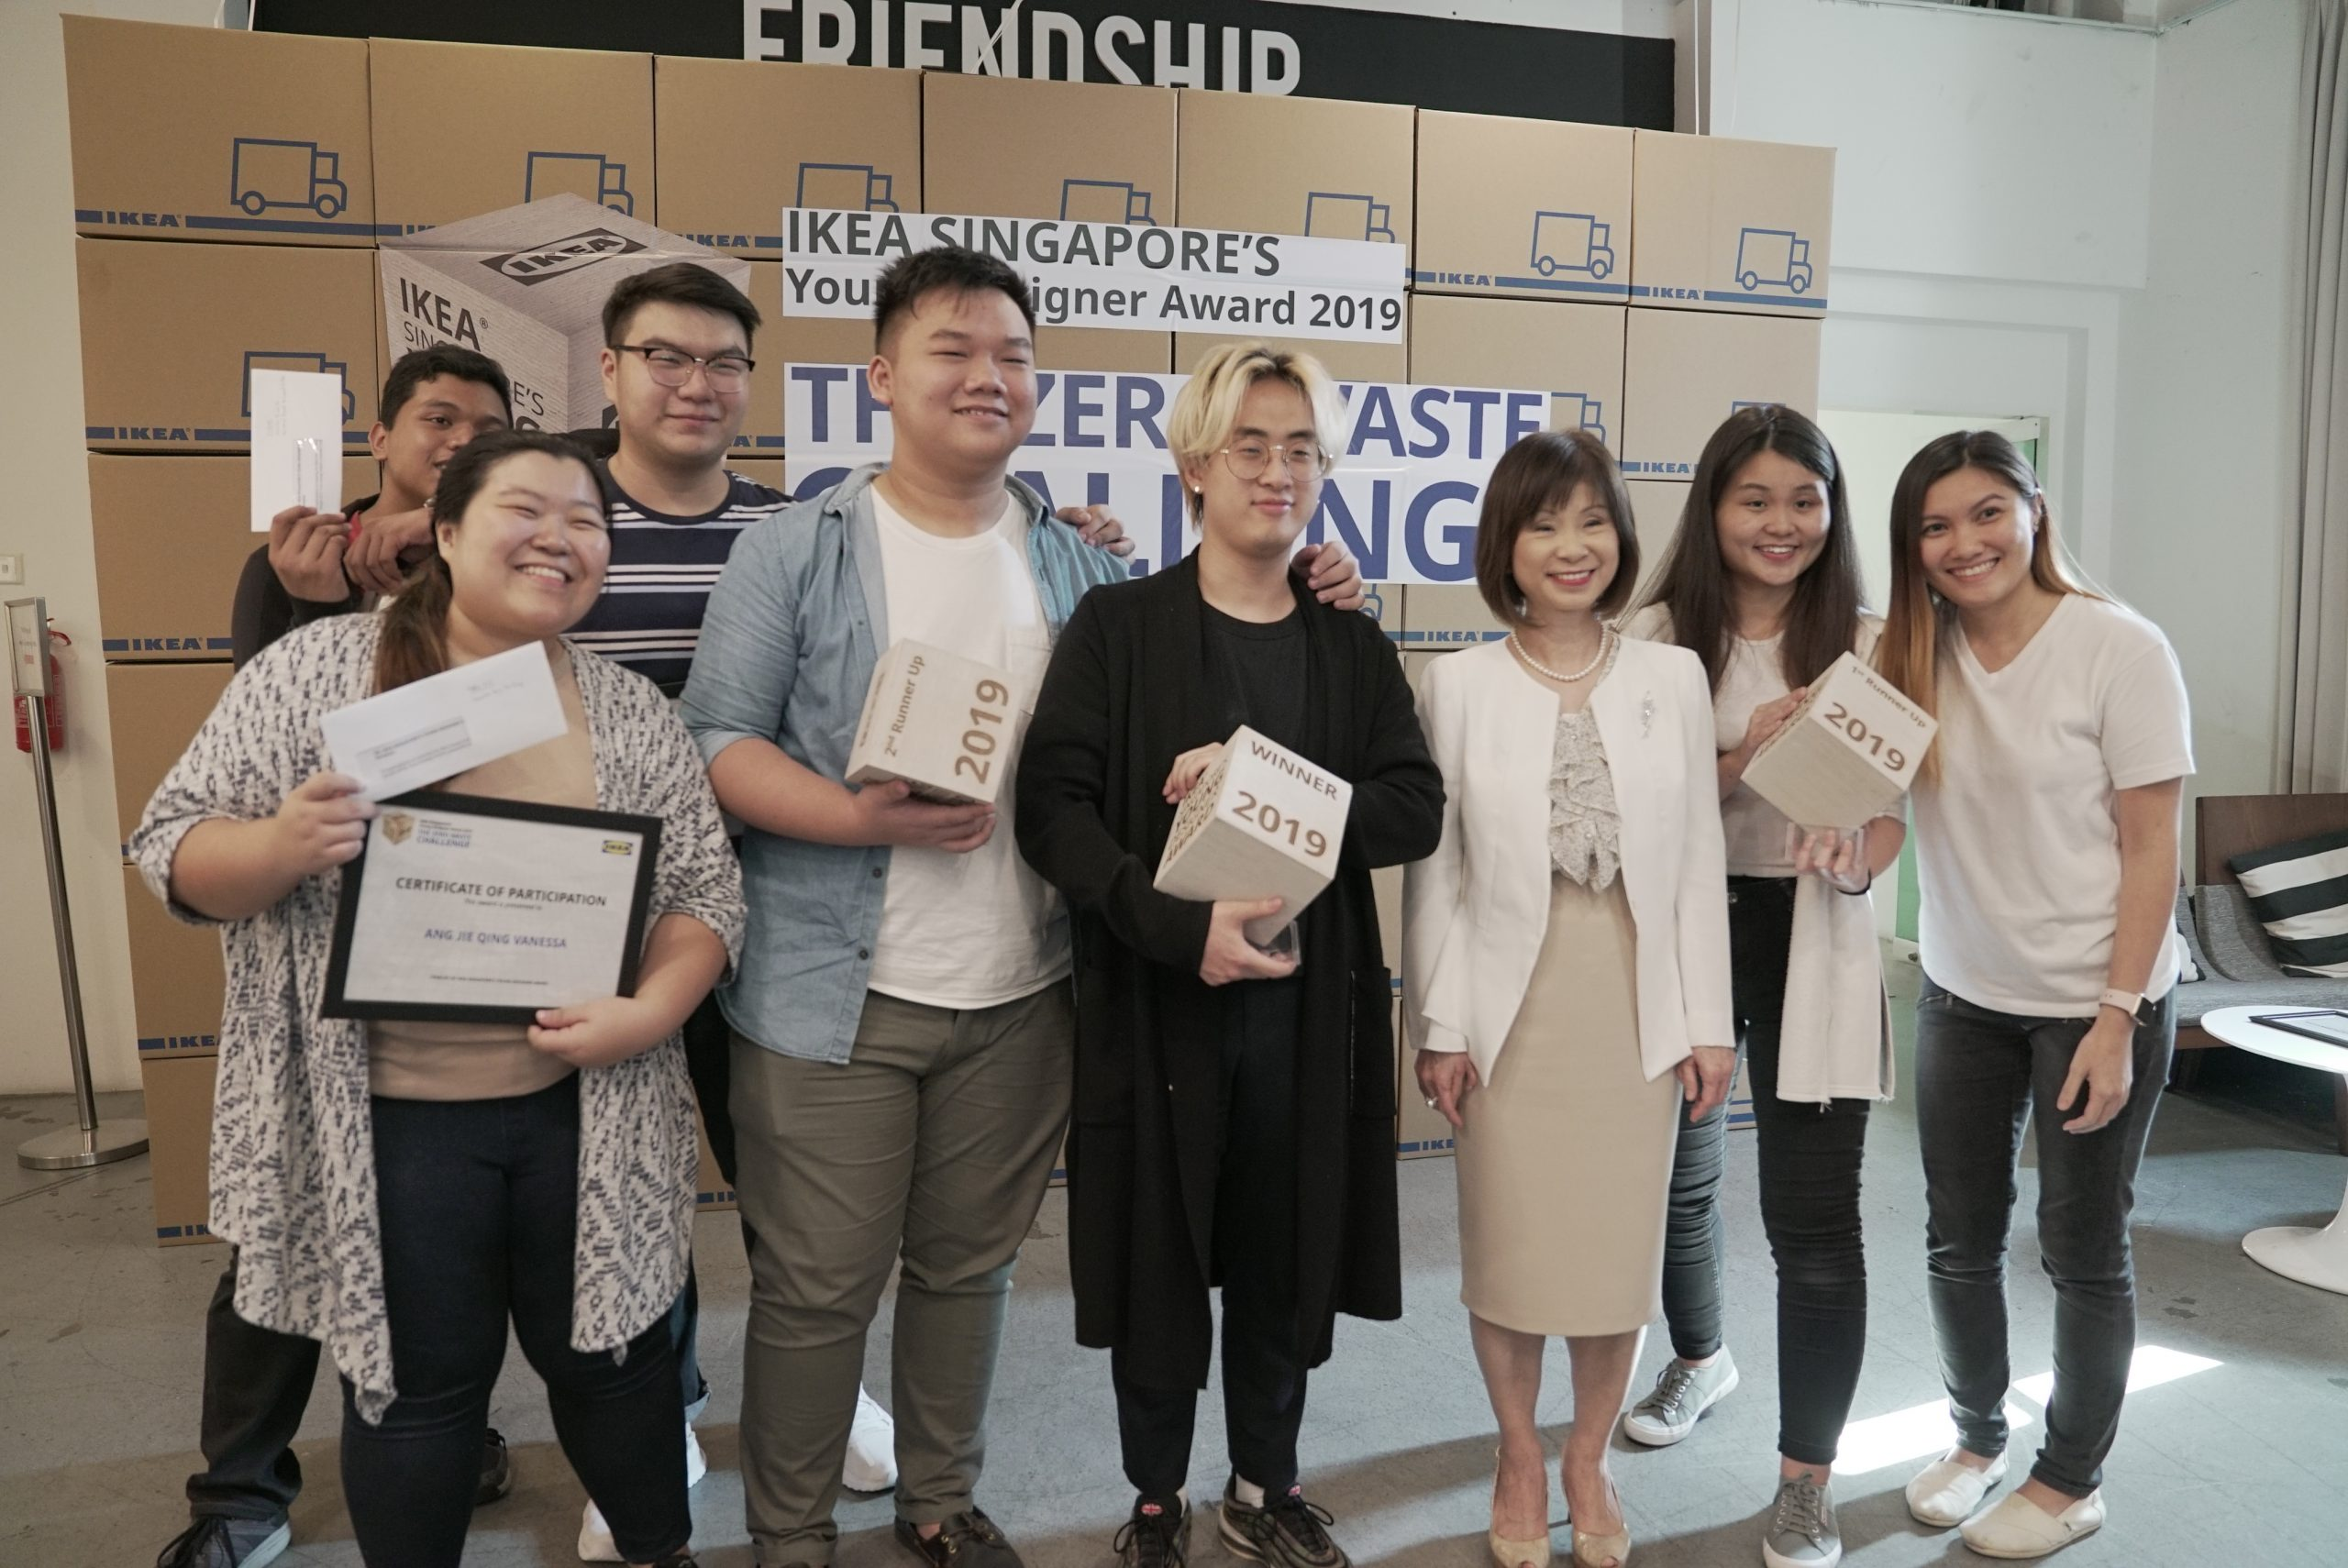 shin hee tae with minister amy khor and group of winners